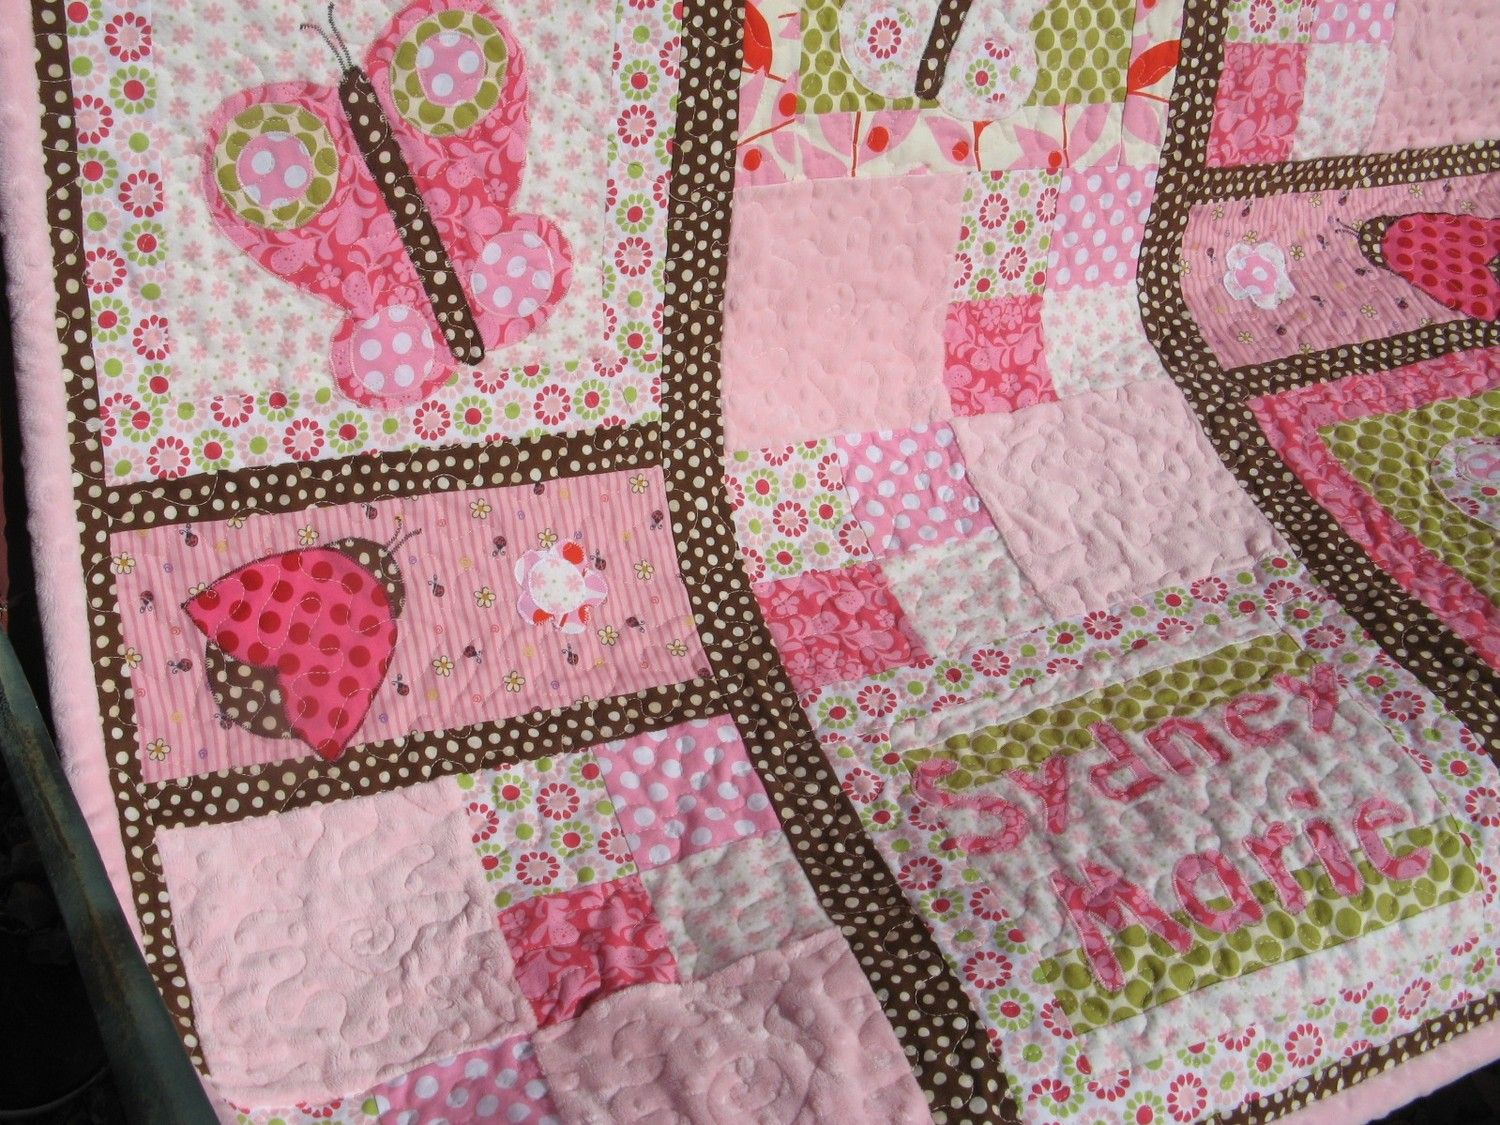 Butterfly Kisses Baby Girl Quilt- a little complicated, but it ... : butterfly baby quilt pattern - Adamdwight.com